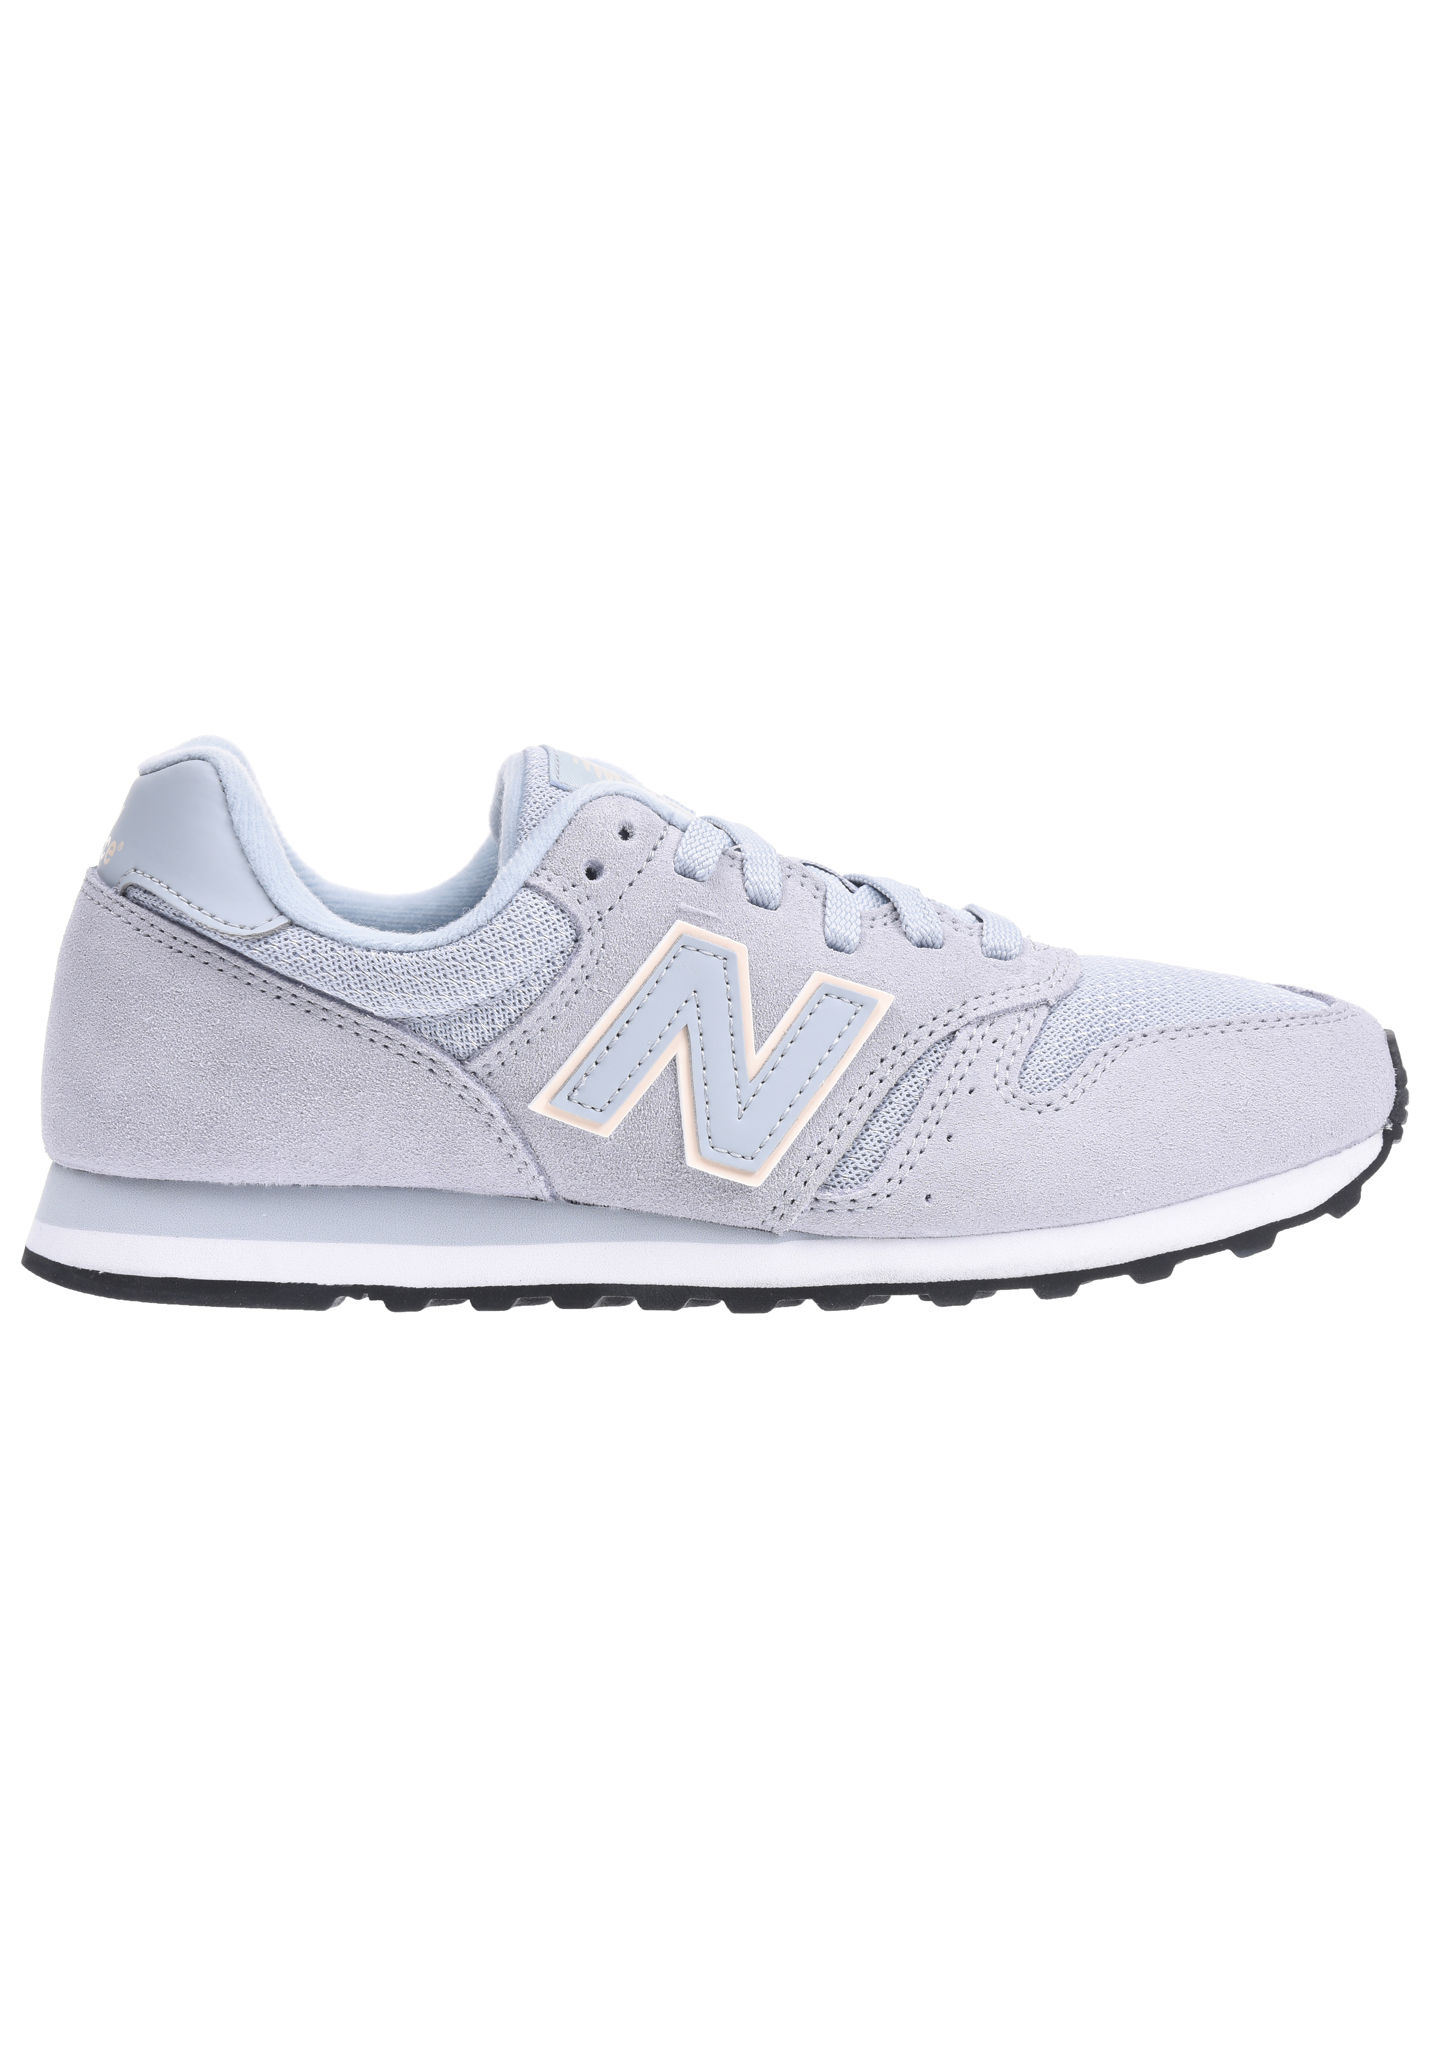 uk new balance 373 b 2a6e2 969ee